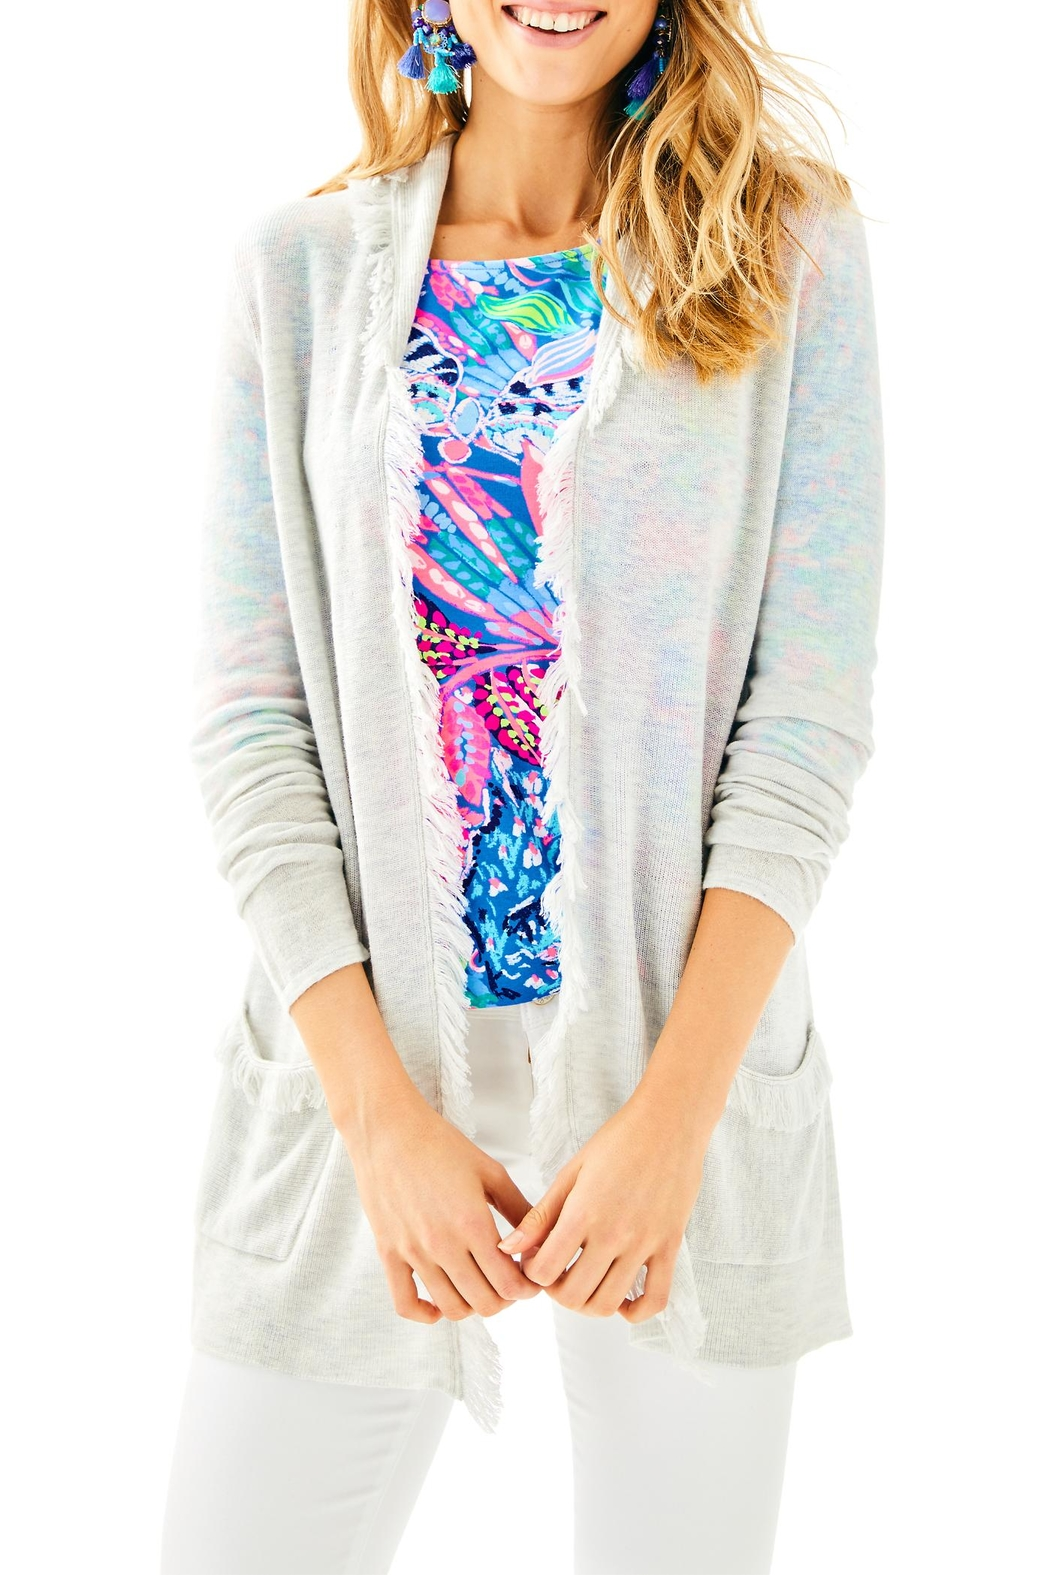 Lilly Pulitzer Bridget Cardigan - Main Image